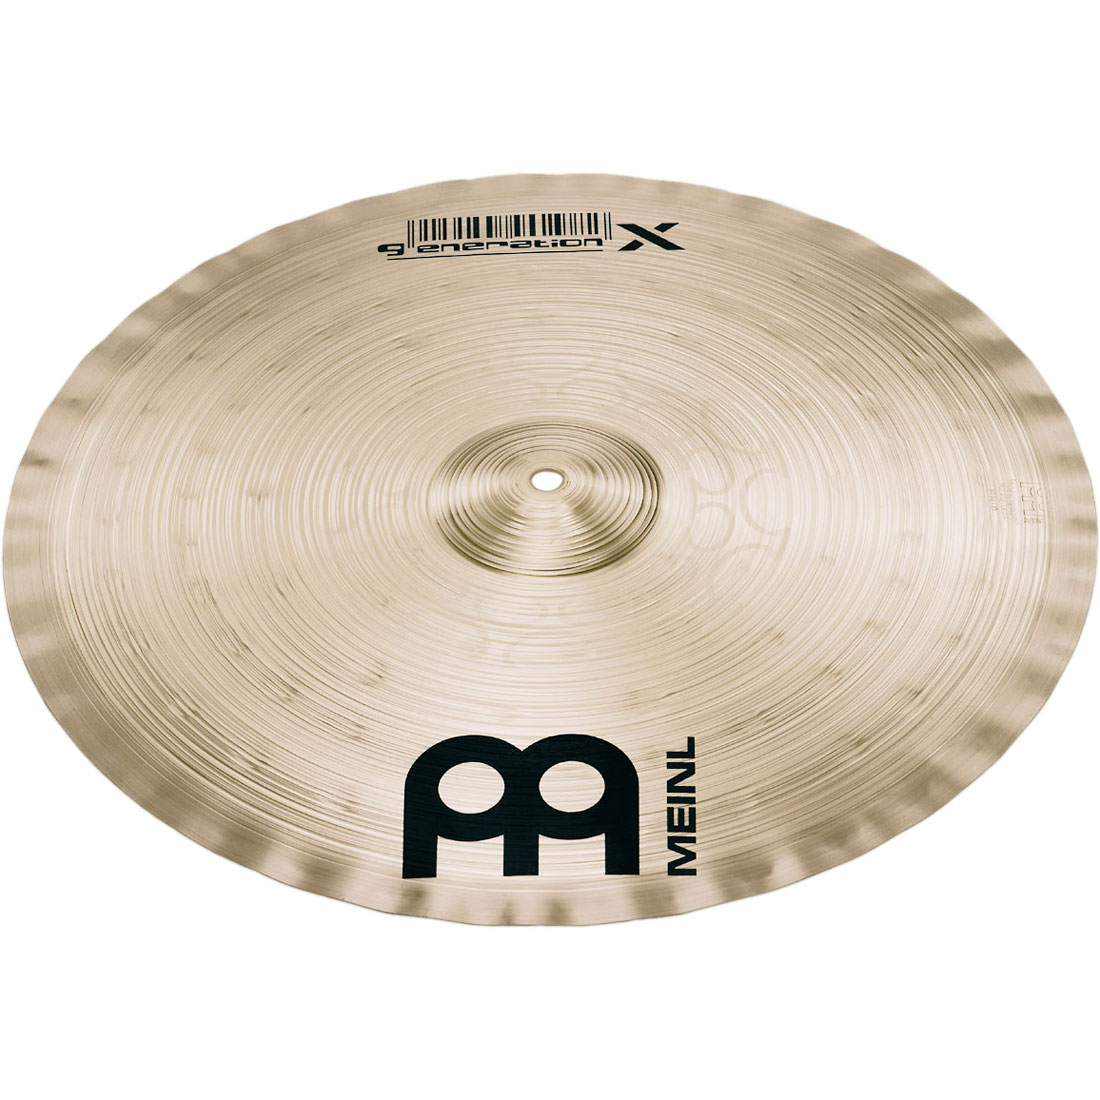 "Meinl 18"" Generation X Kinetik Crash Cymbal"